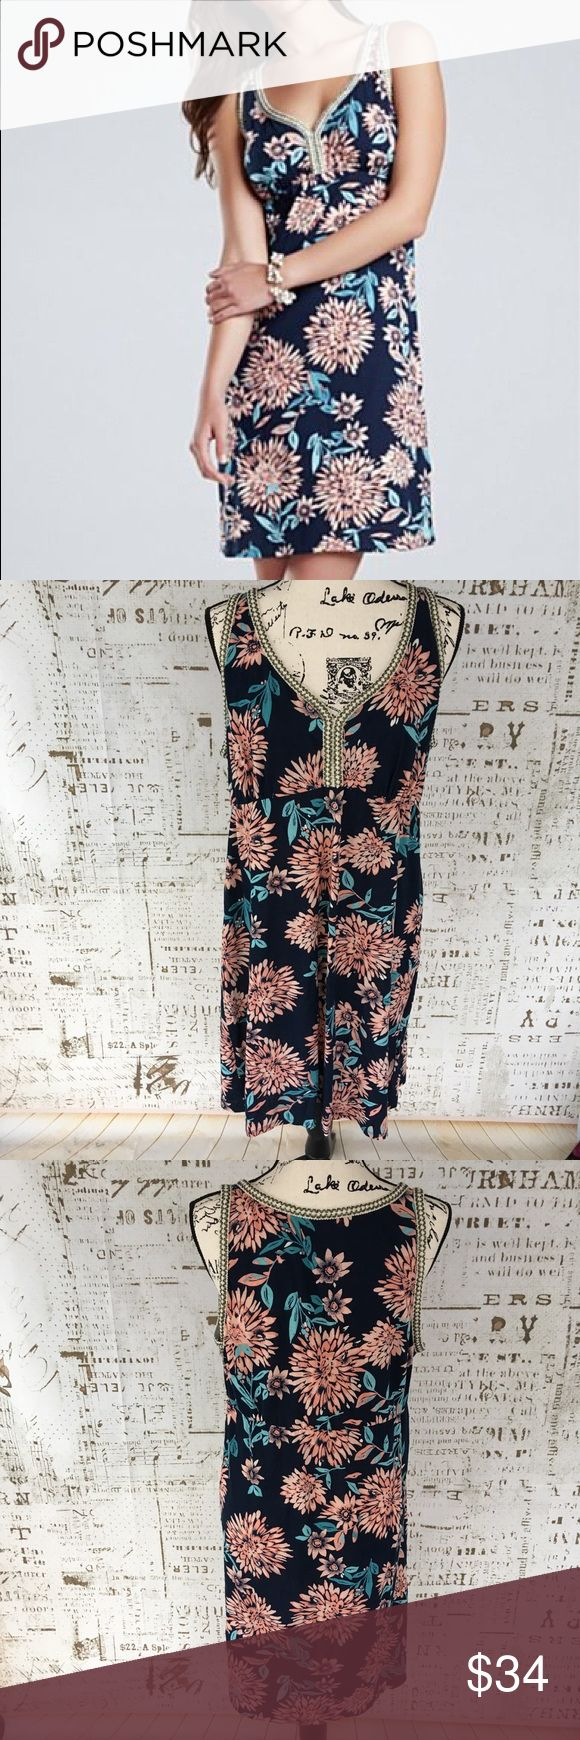 Lucky Brand Eastern Dress sz XL Lucky Brand Eastern Dress sz XL, excellent condition barely worn, cotton, v-neck, floral print with metallic trim, navy blue, pit to pit 20 inches, waist flat laying 18 inches, length 38 inches. Lucky Brand Dresses